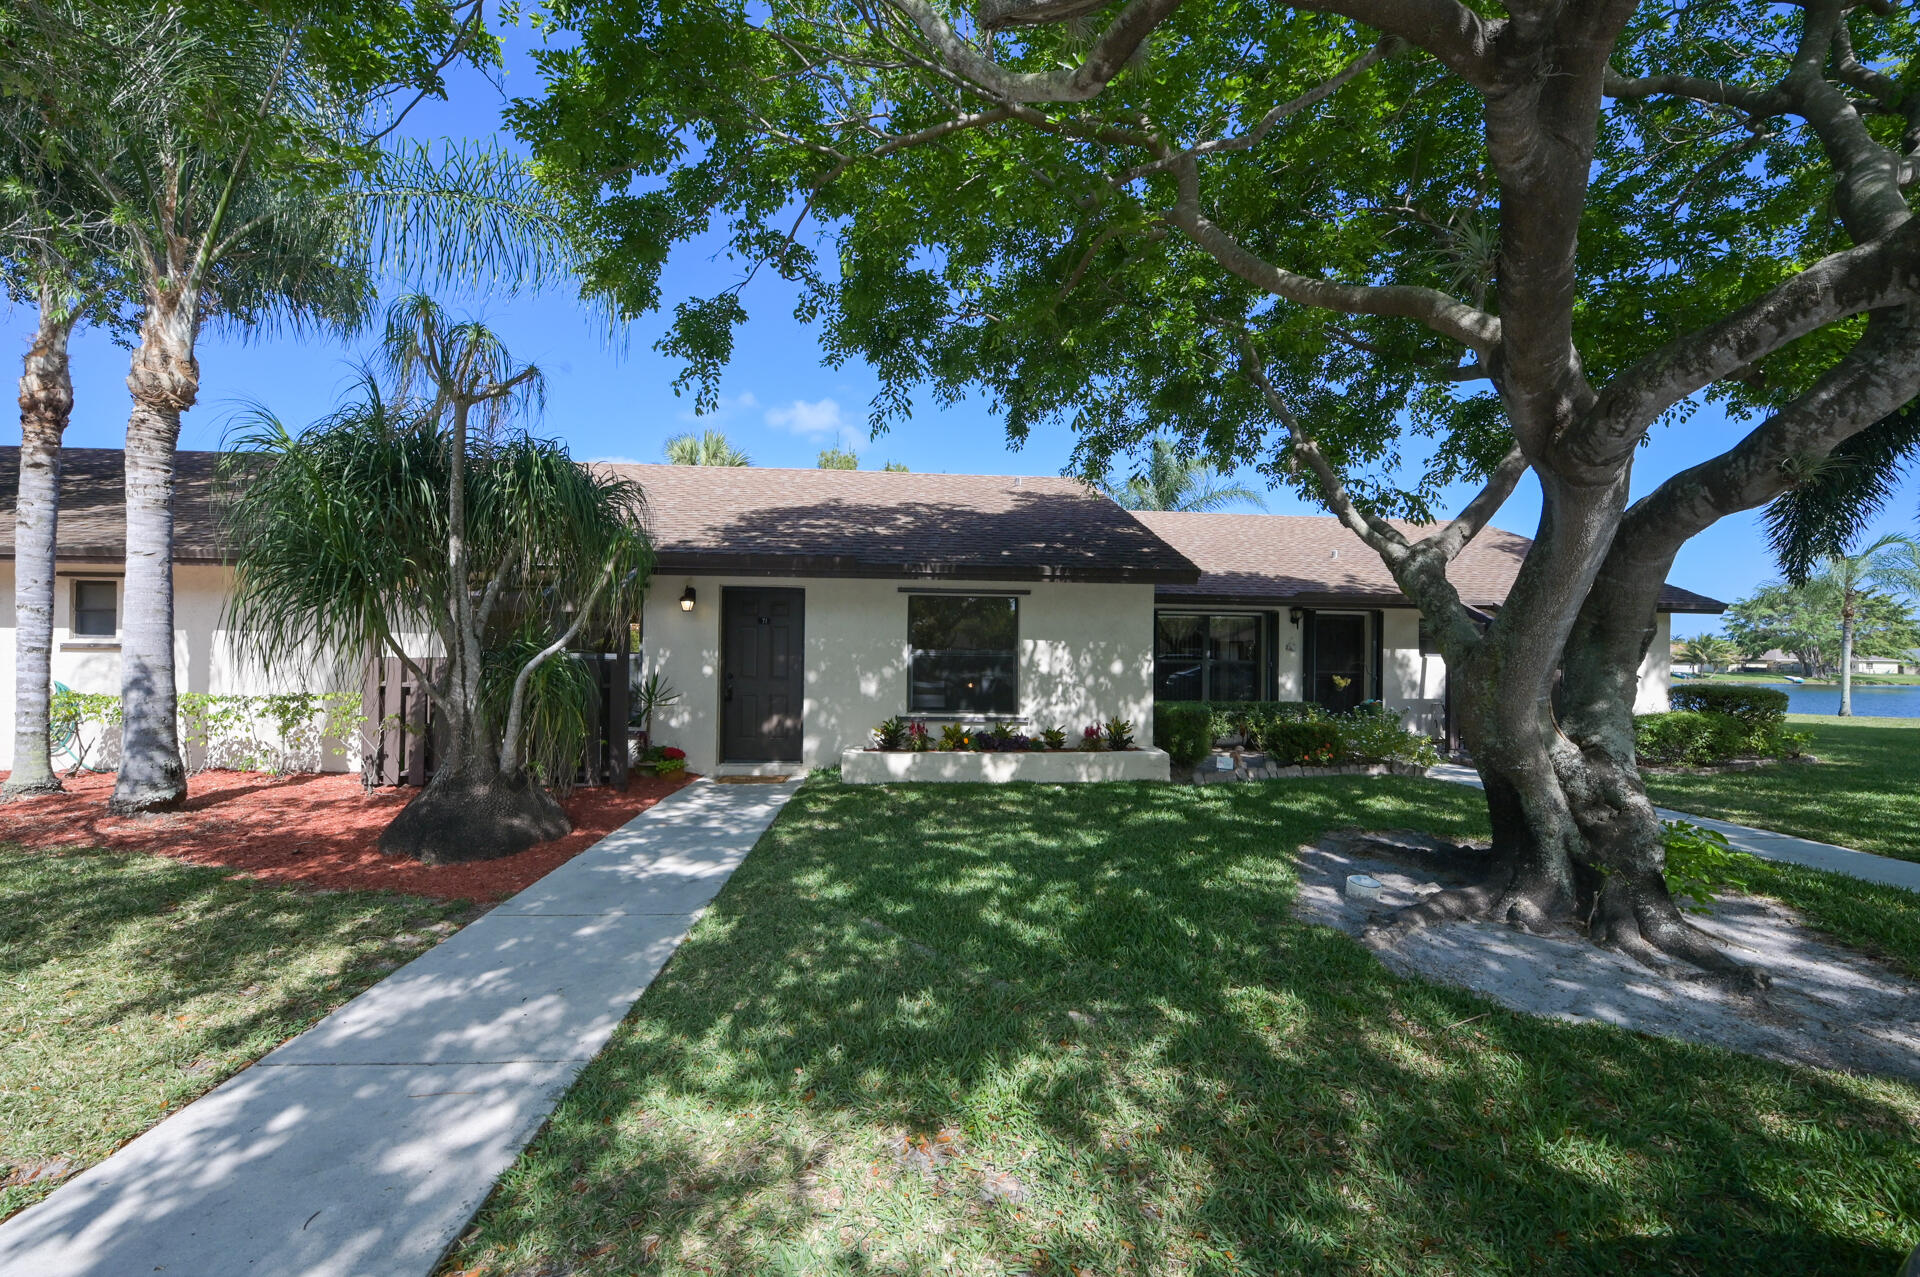 71 Via De Casas Norte Boynton Beach, FL 33426 small photo 1